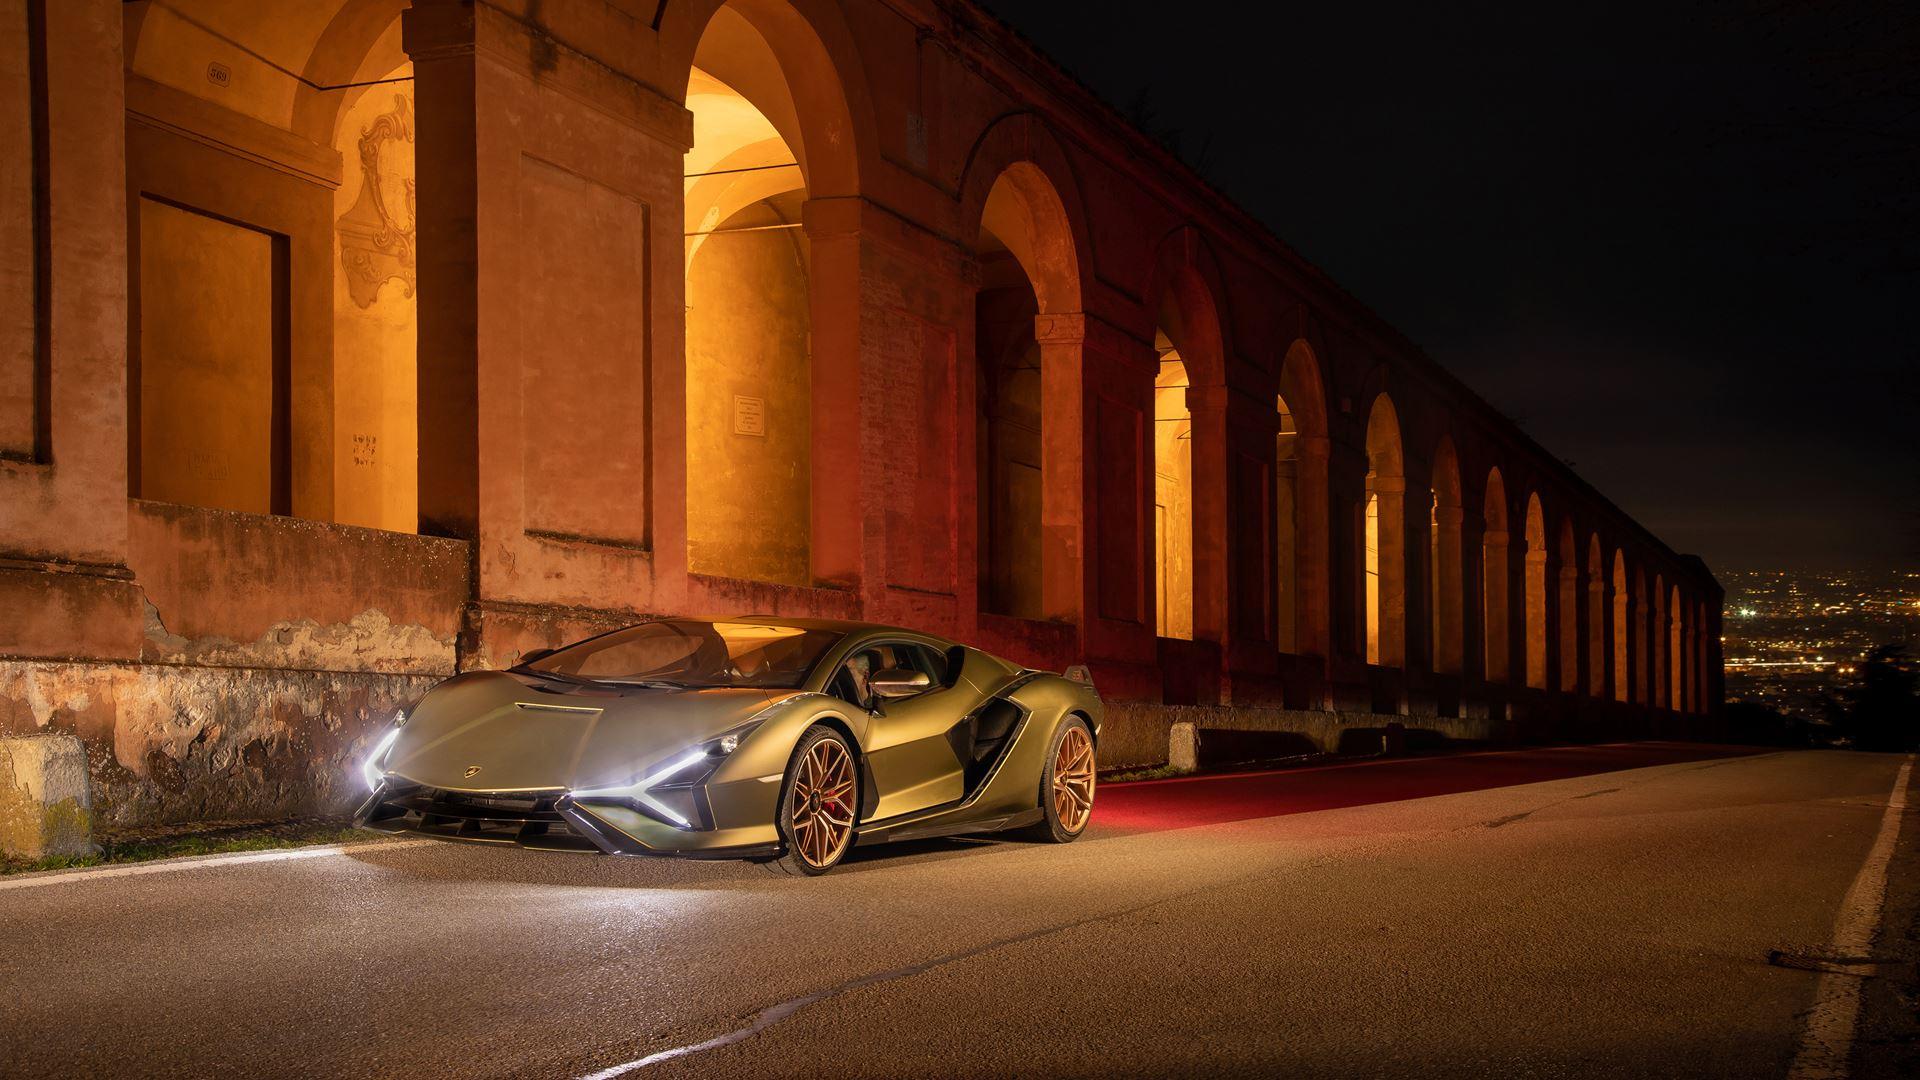 Lamborghini Sián pays homage to the porticoes of Bologna. Following the UNESCO designation, the super sports car from Sant'Agata travels the streets of Bologna's porticoes - Image 5